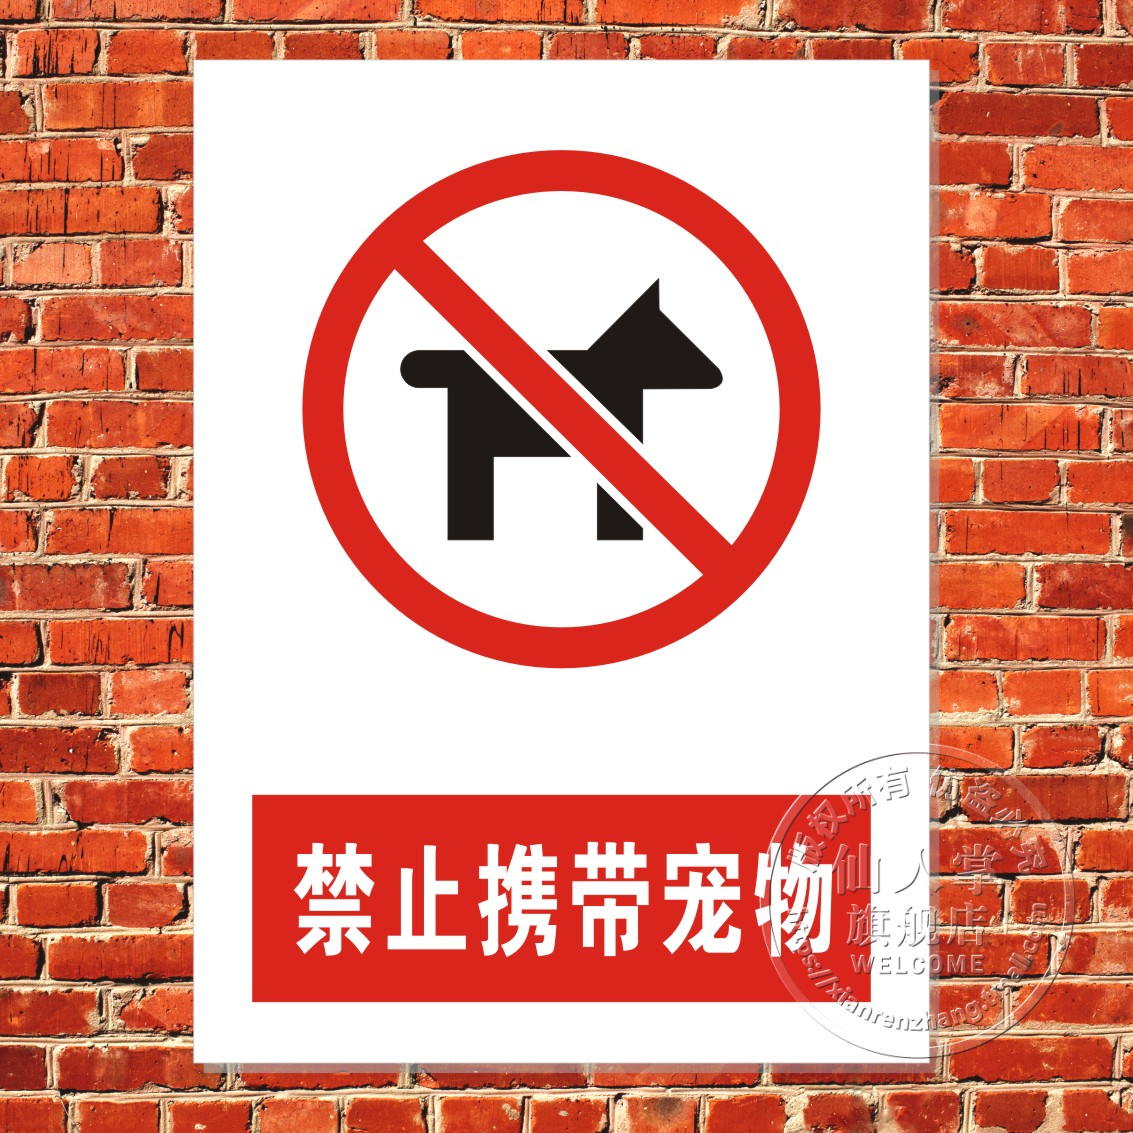 It is prohibited to carry pet cheap safety warning signs audits nameplate oem customized tips